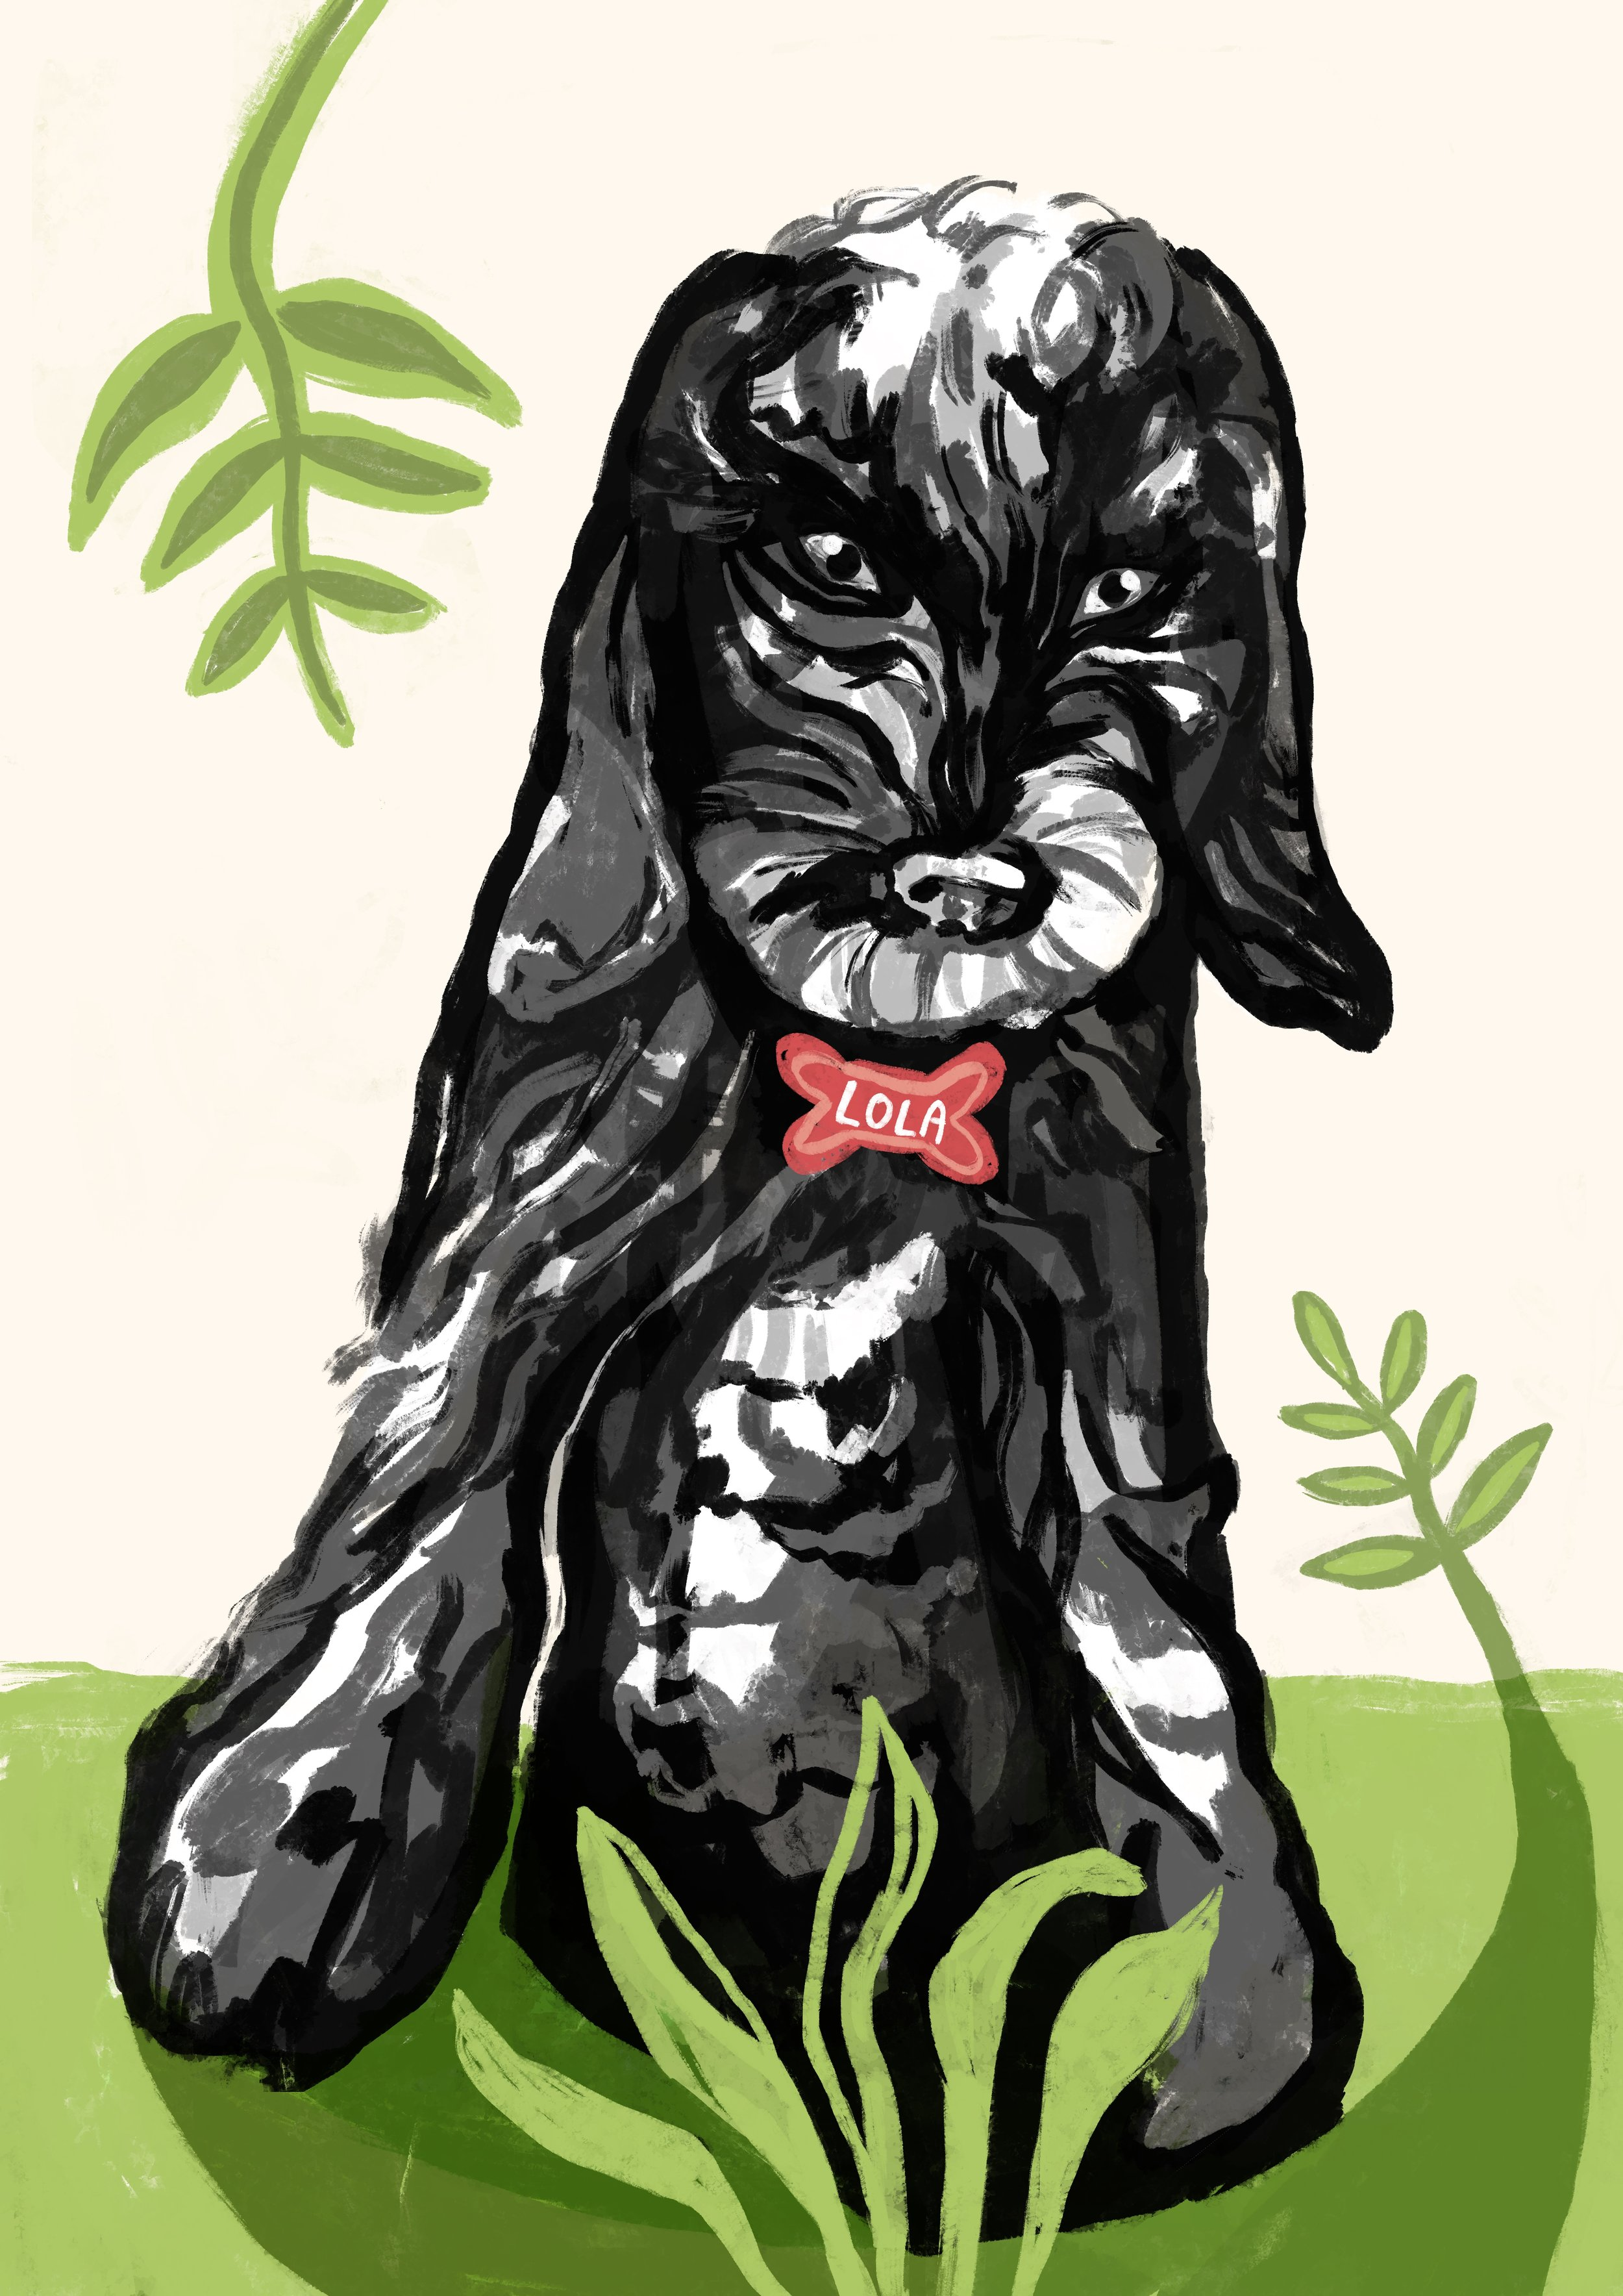 Dog Portraits - Turn your favourite pooch into a piece of art?Availble in:Digital CopyFramed and Mounted Gift Package Availble